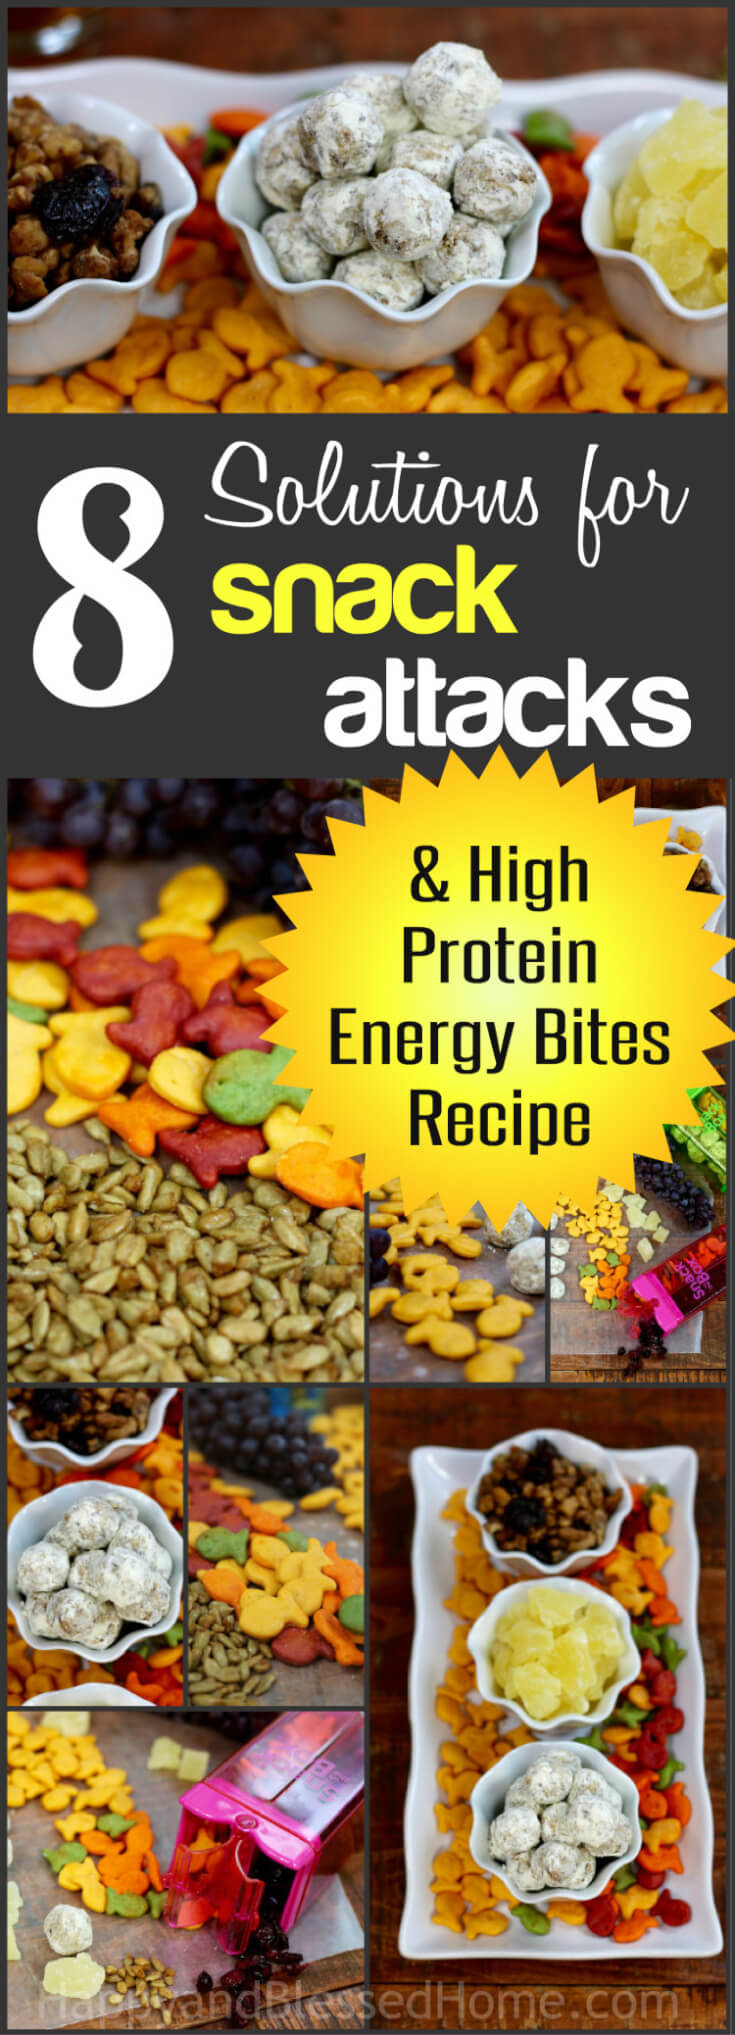 8 Solutions for Snack Attacks plus a peanut-free High Protein Energy Bites Recipe